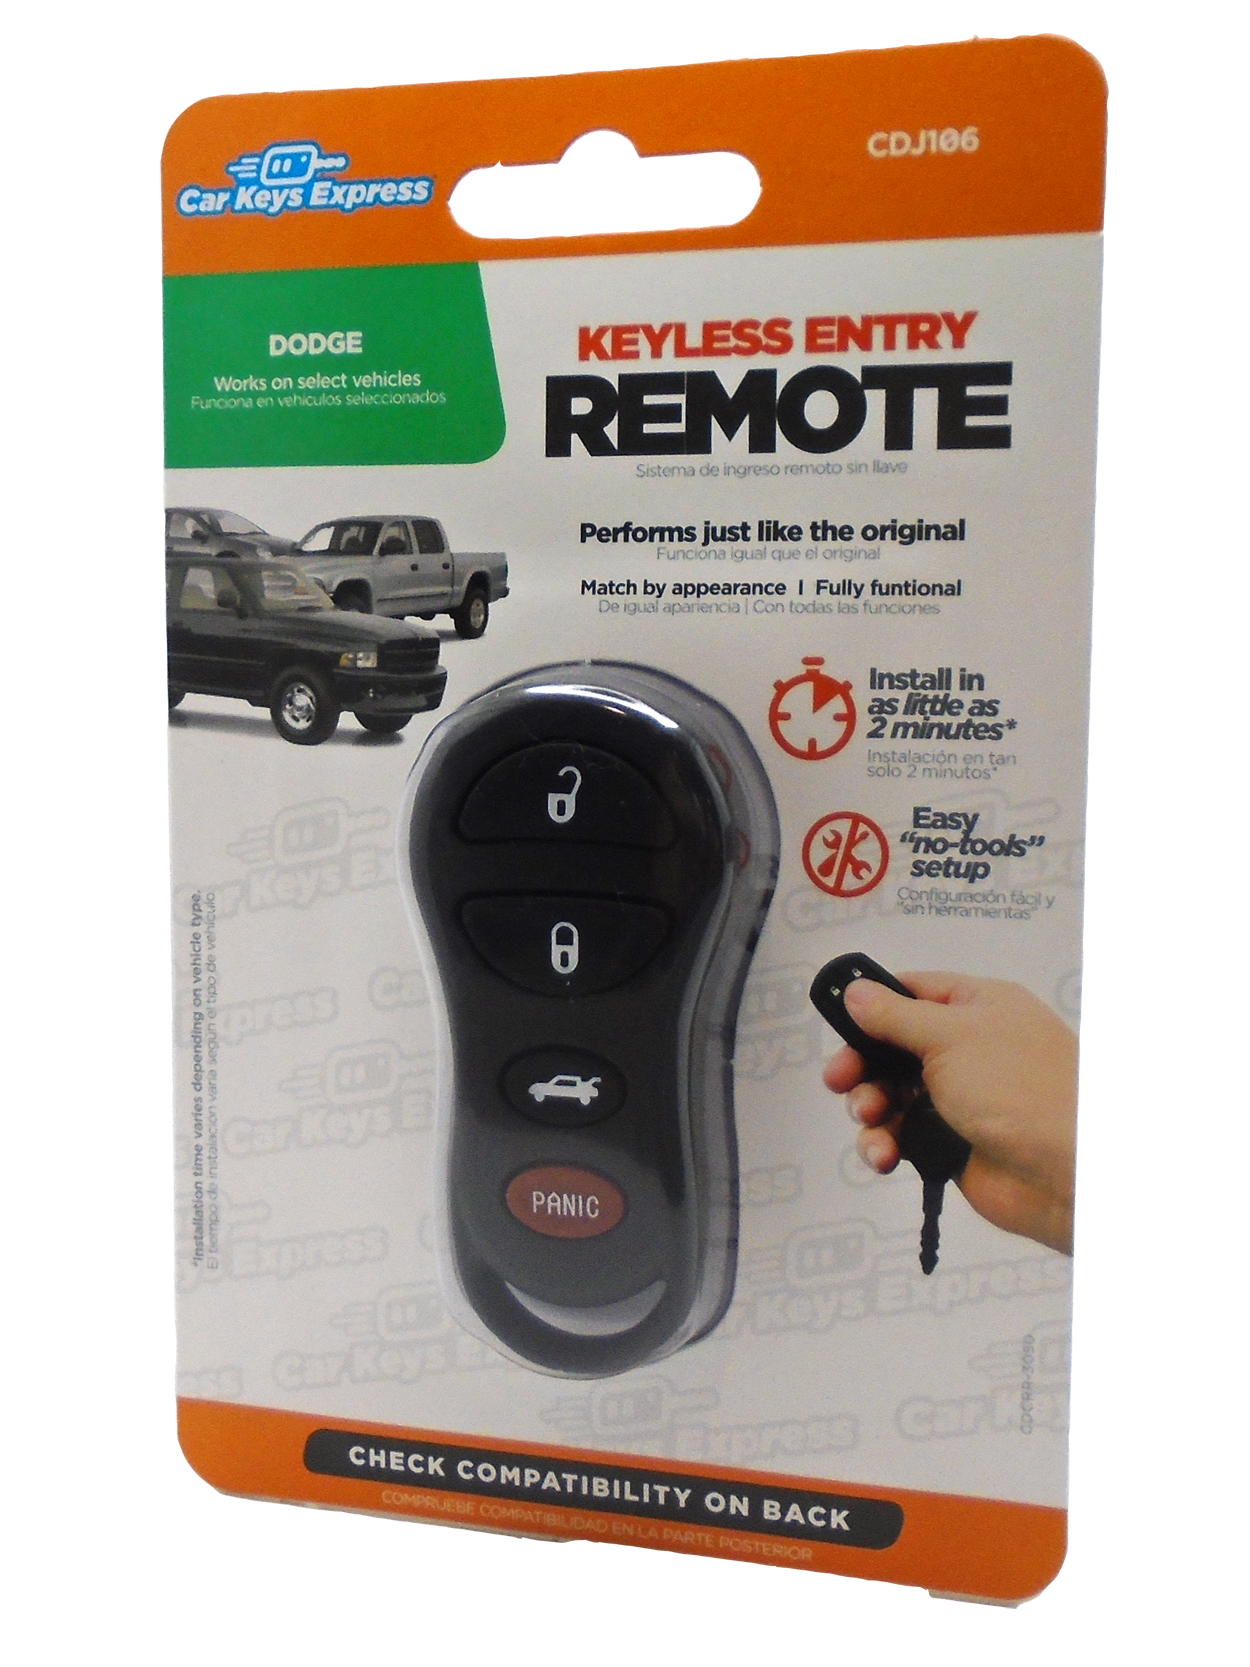 Chrysler / Dodge / Jeep Keyless Entry Remote - 4 Button